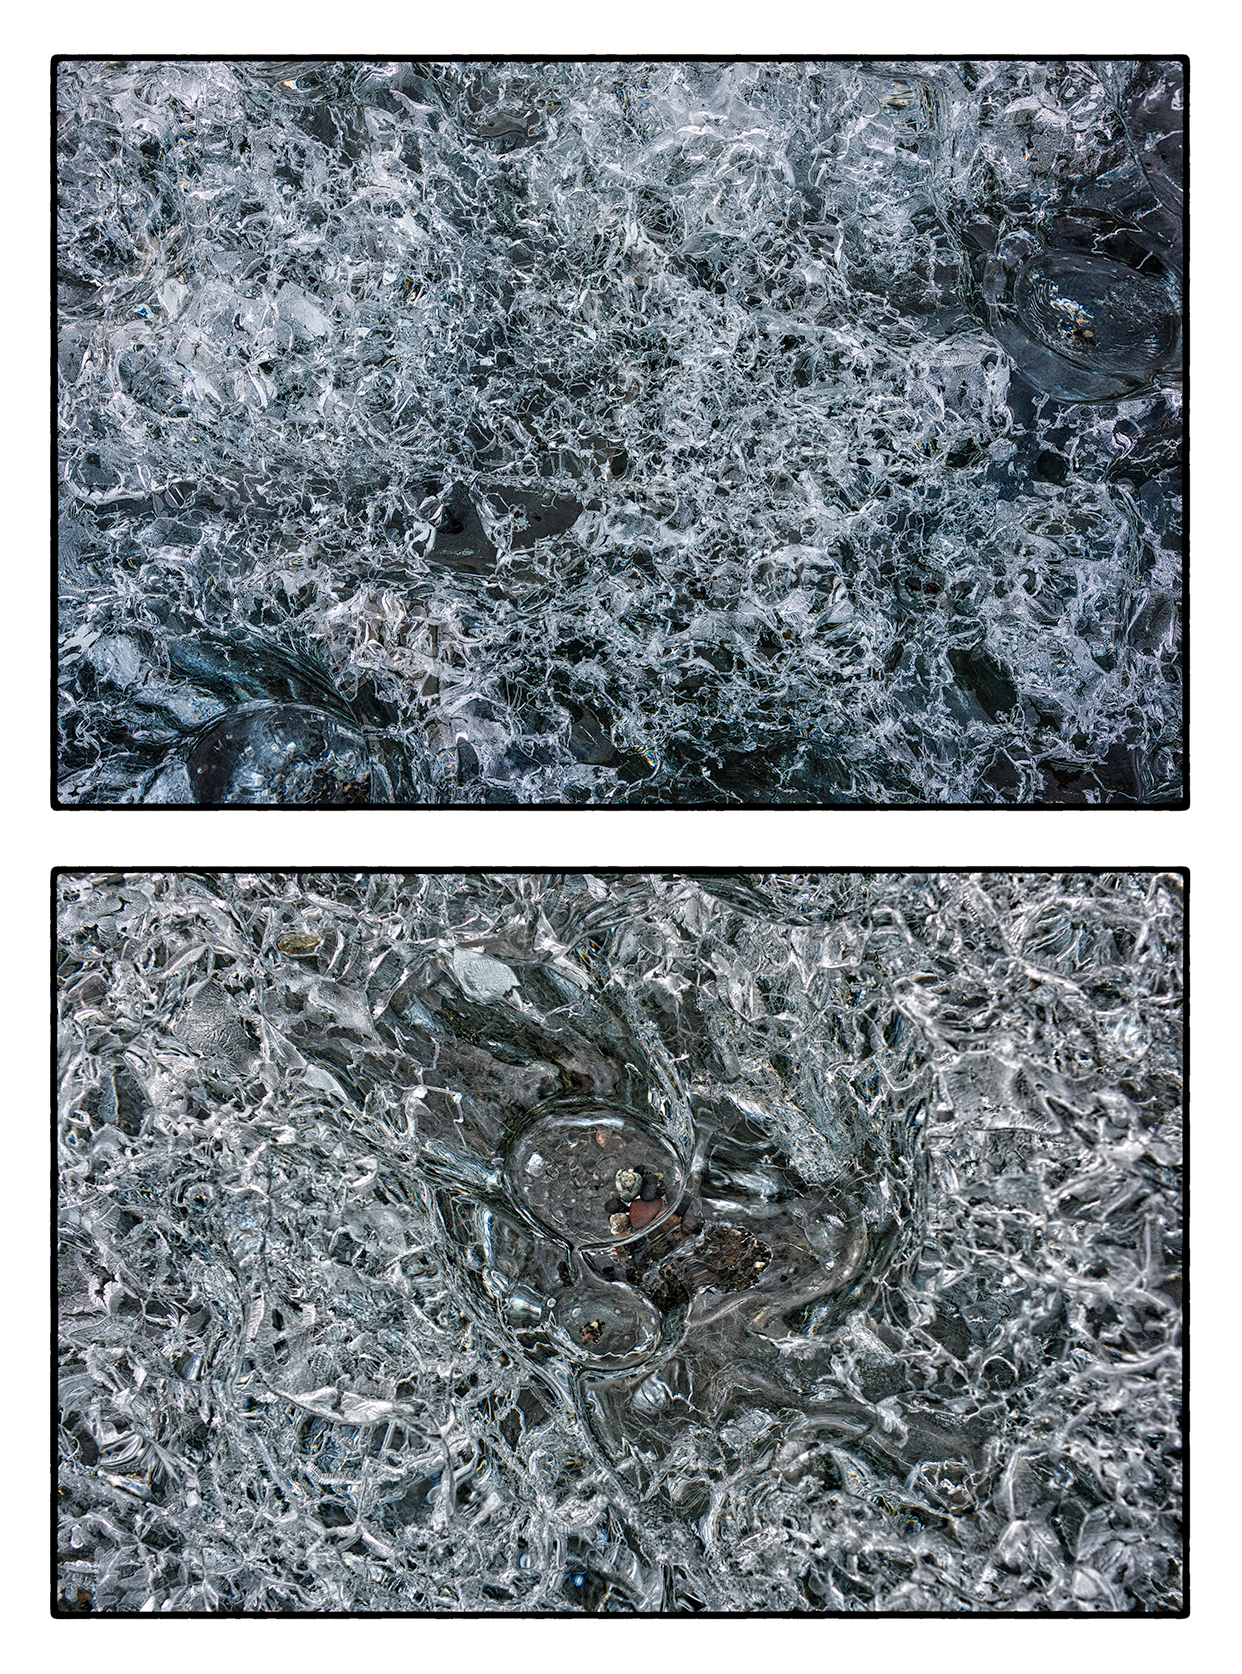 Close-ups of Thousand Year Old Ice Crystals